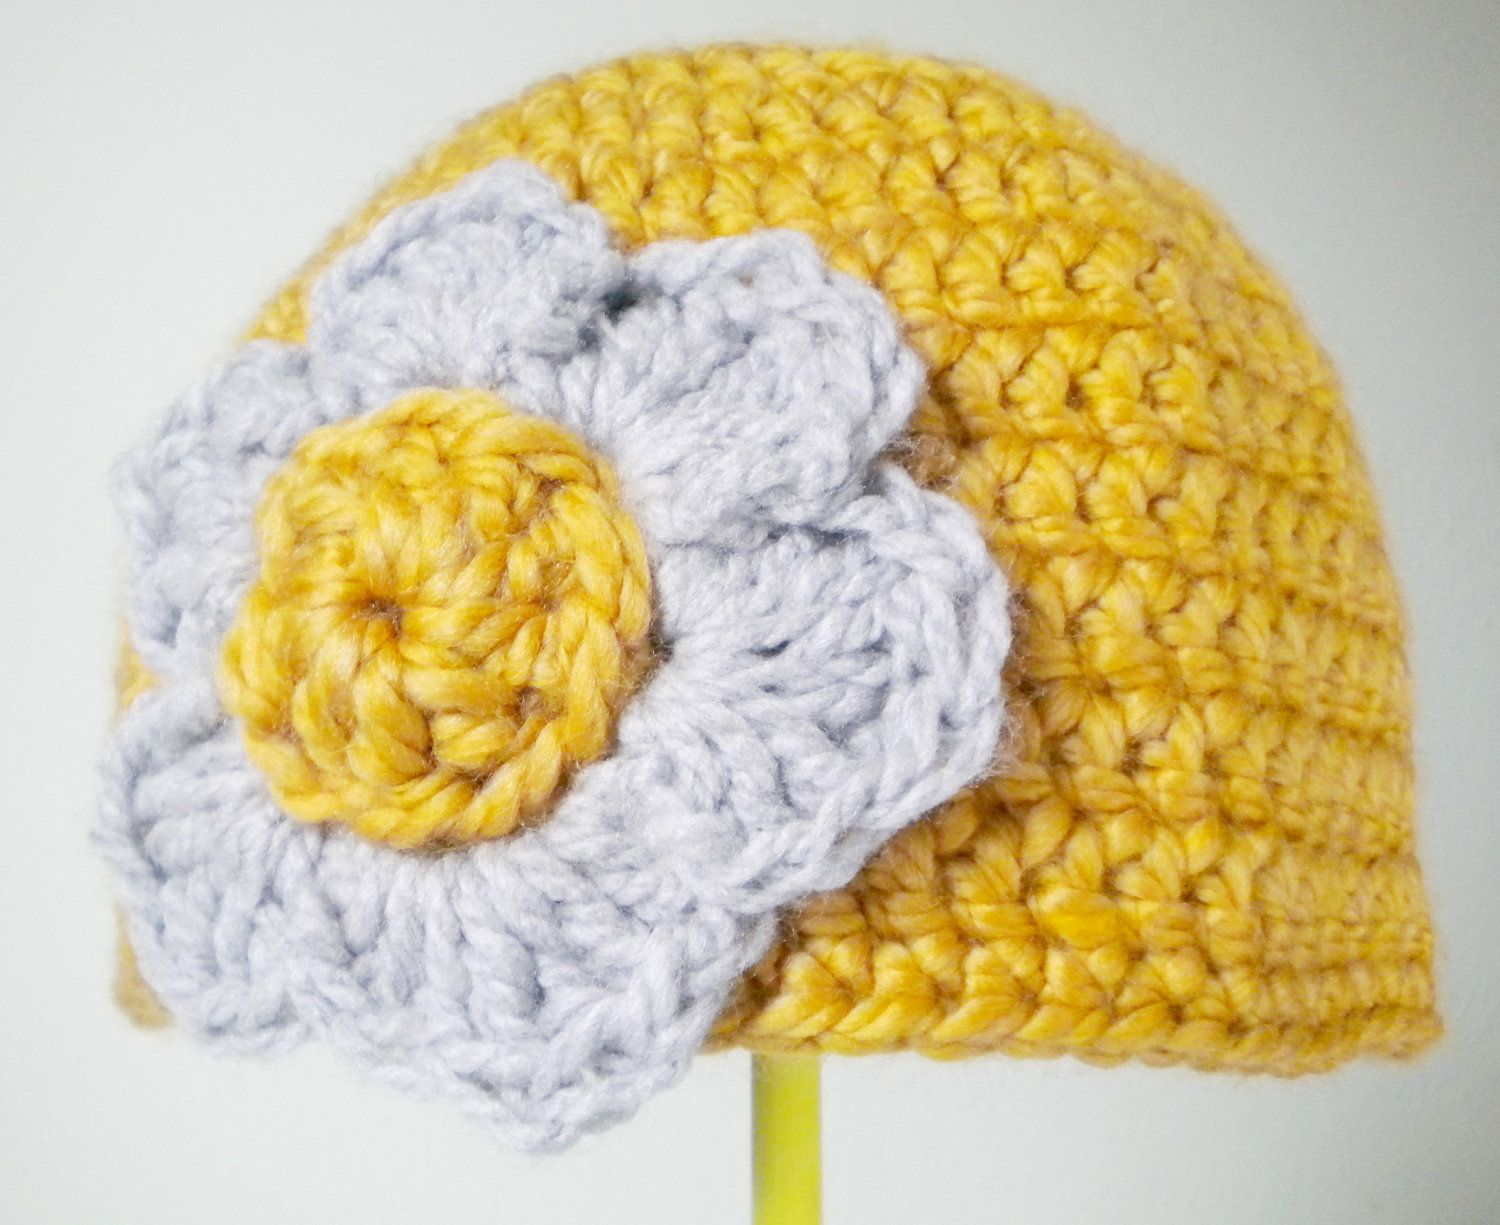 Crochet Hat - Chunky Wool Beanie in Sunshine Yellow and Pale Gray - Soft and Luxurious Crochet Women's Hat for Baby / Toddler / Girl / Woman